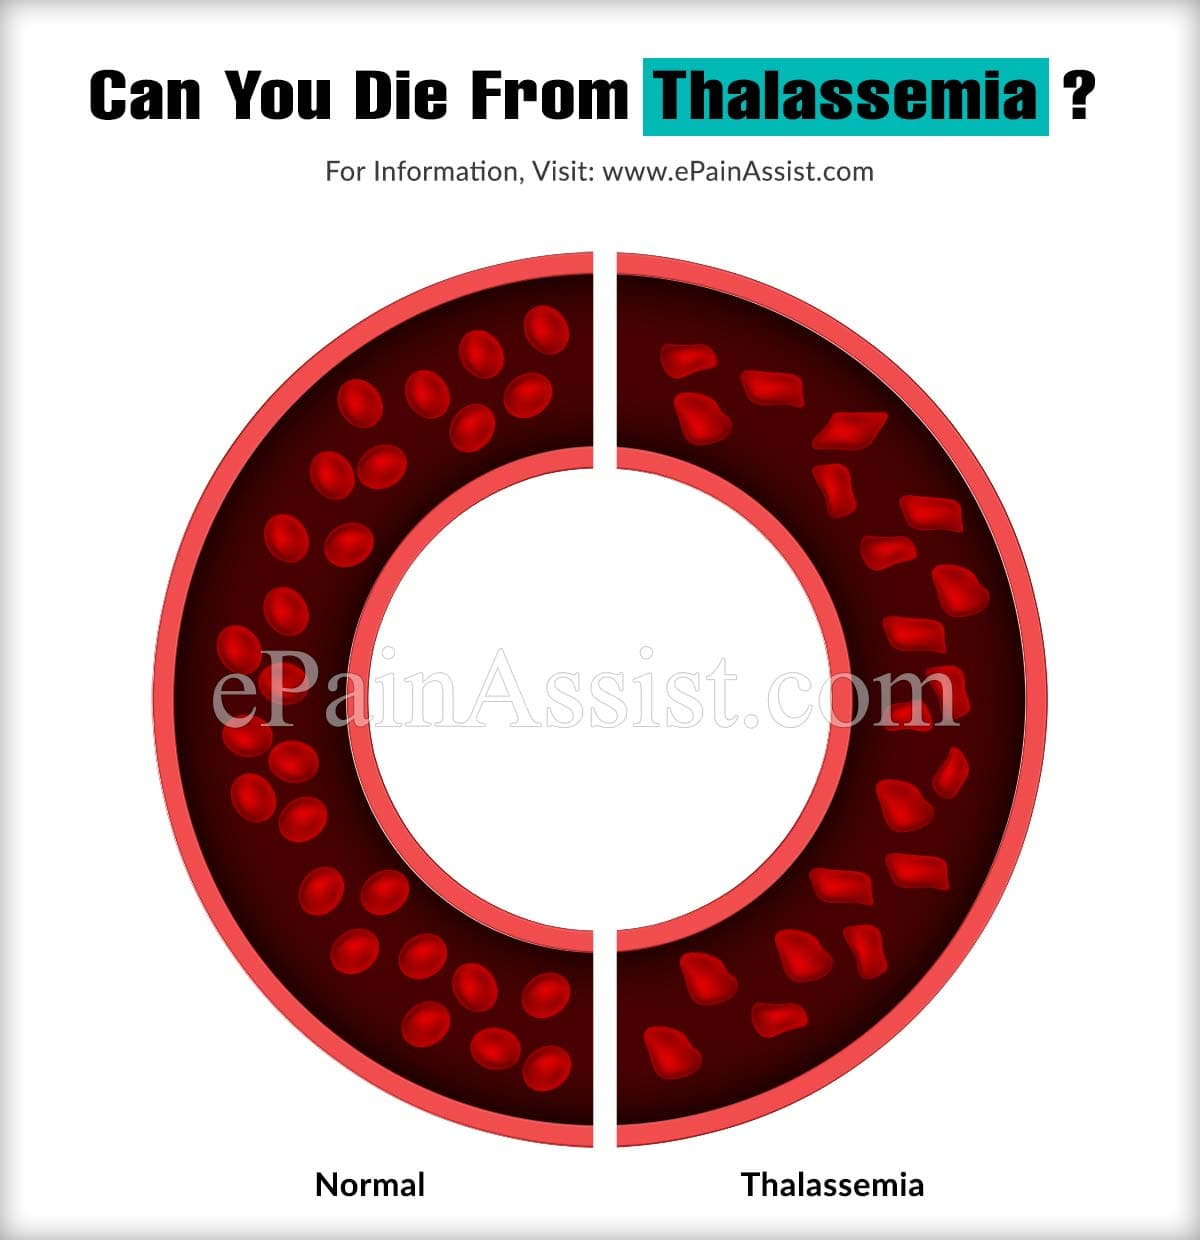 Can You Die From Thalassemia?